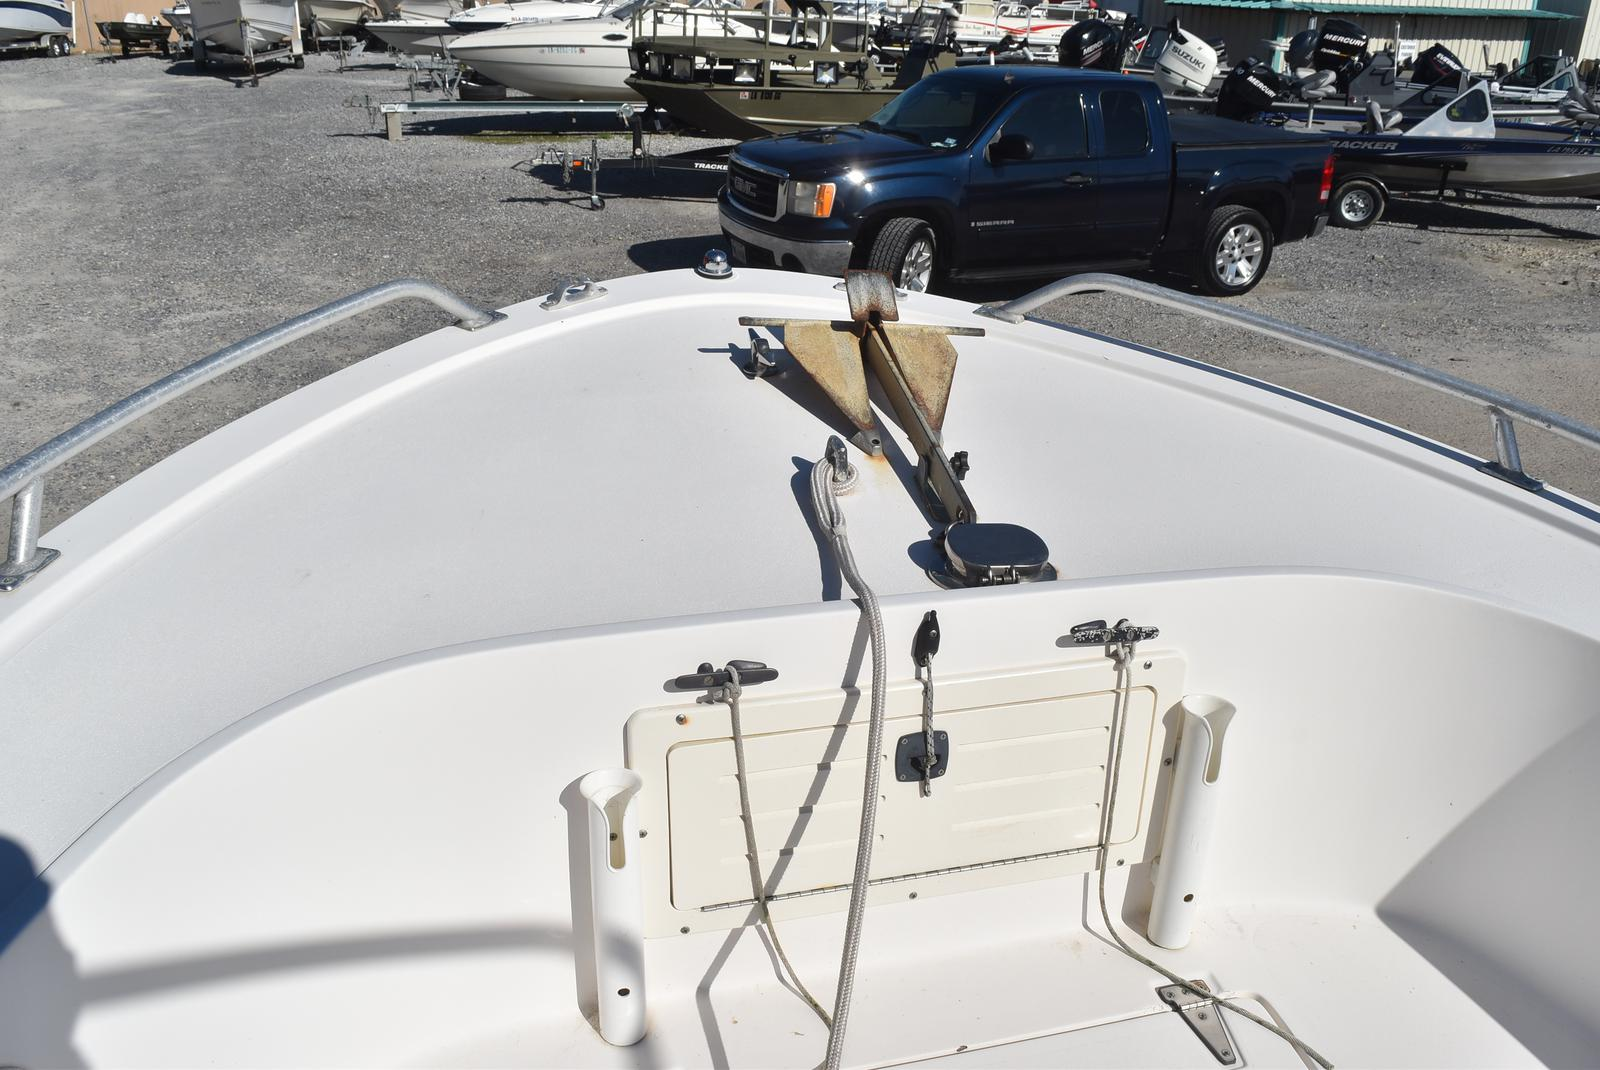 1996 Mako boat for sale, model of the boat is 22 Mako & Image # 22 of 26